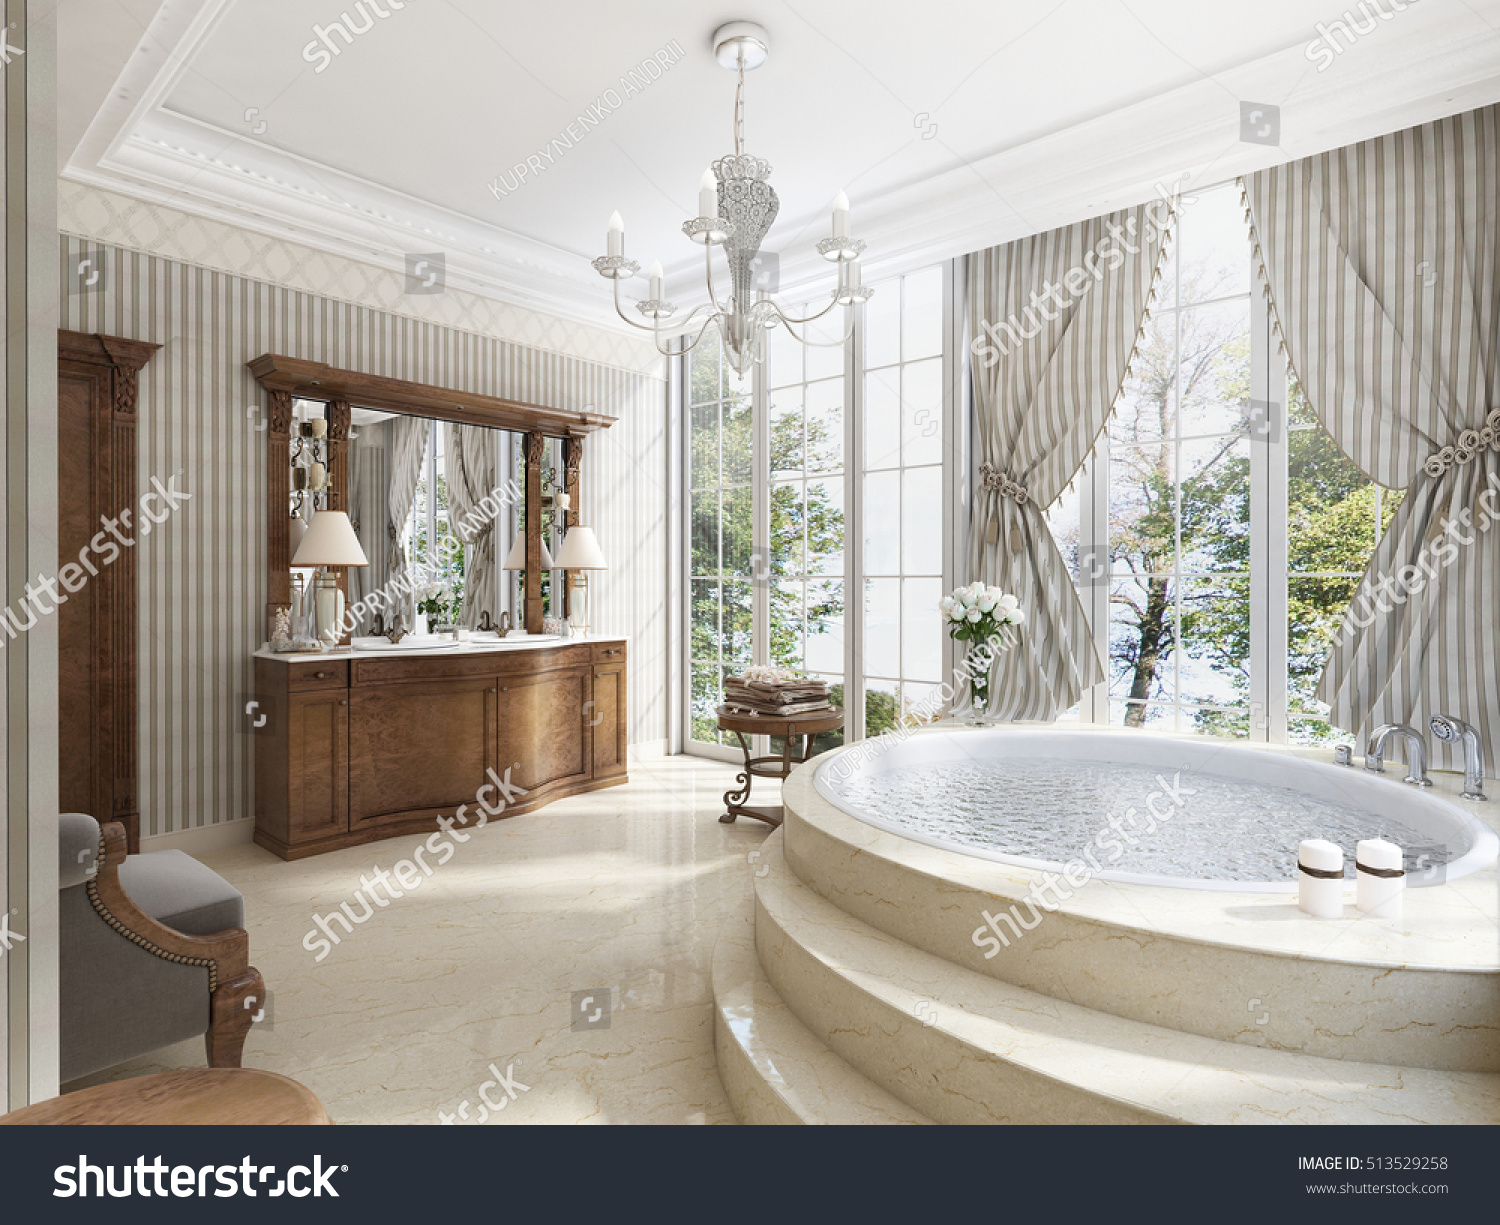 Bathroom Luxury Neoclassical Style Sinks Tubs Stock Illustration ...